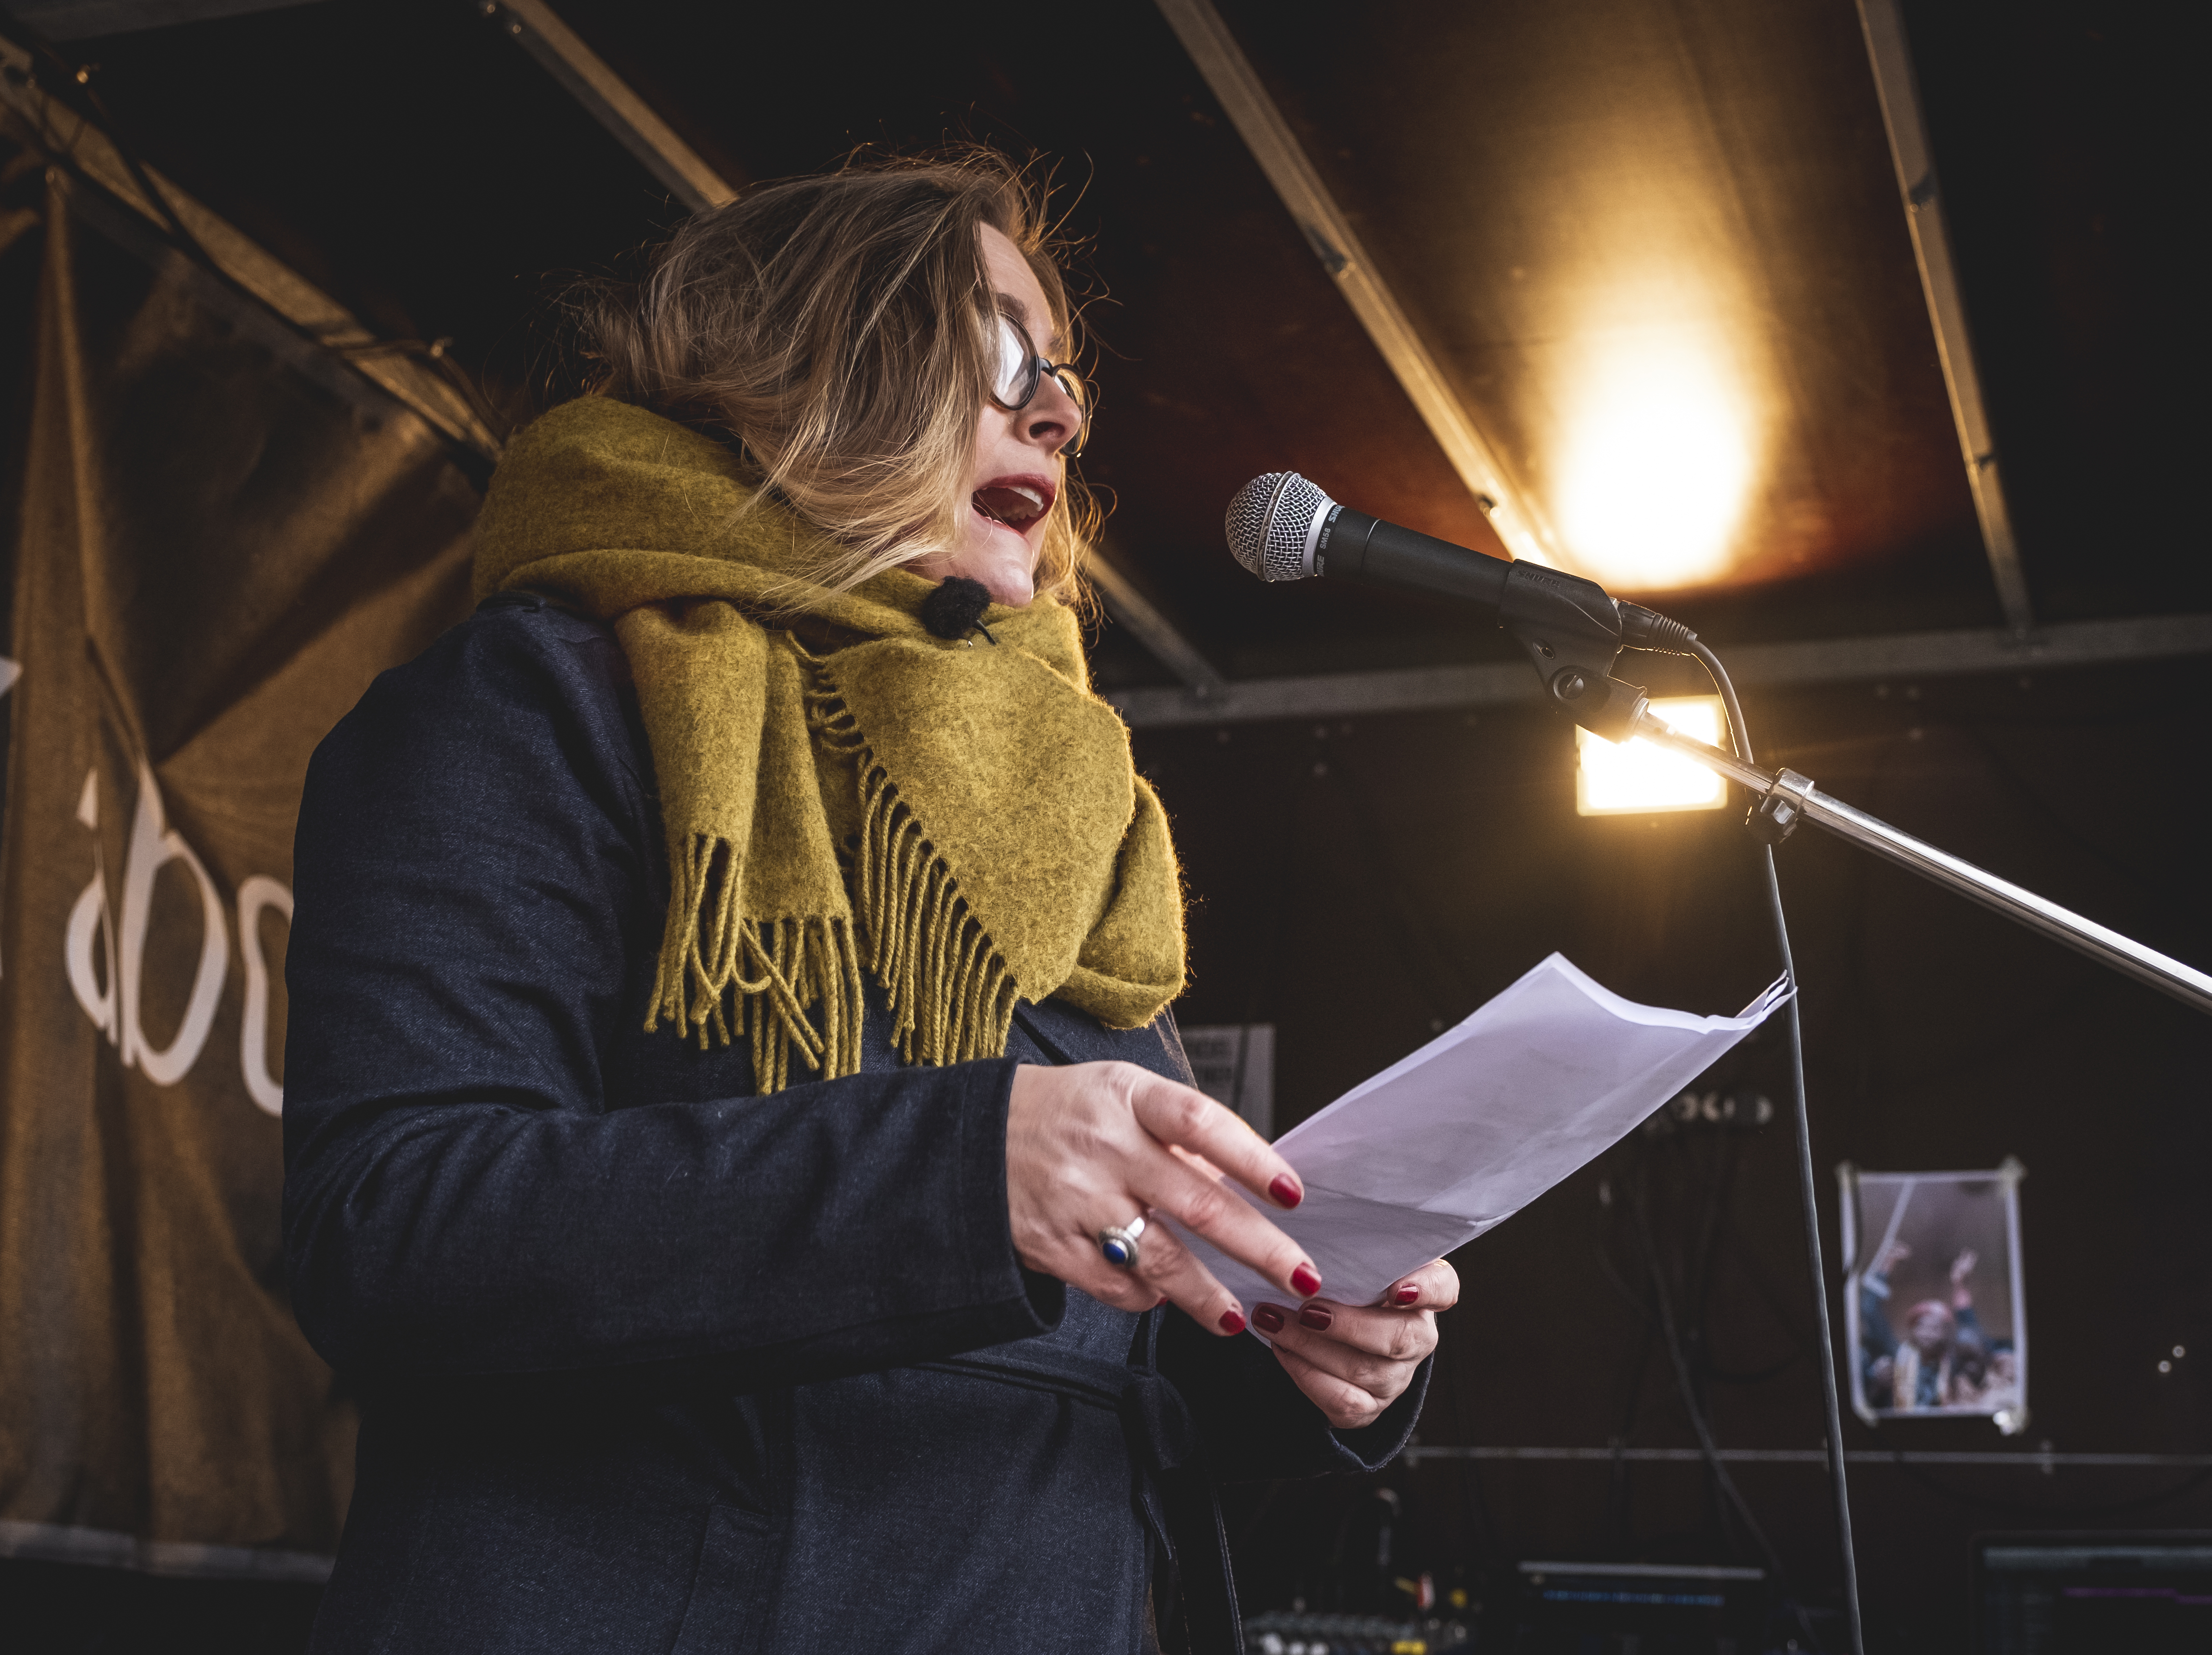 Rape survivor Kirstine Holst speaking at a consent demo in Denmark, campaigning with Amnesty to get the government to adopt consent based rape laws.